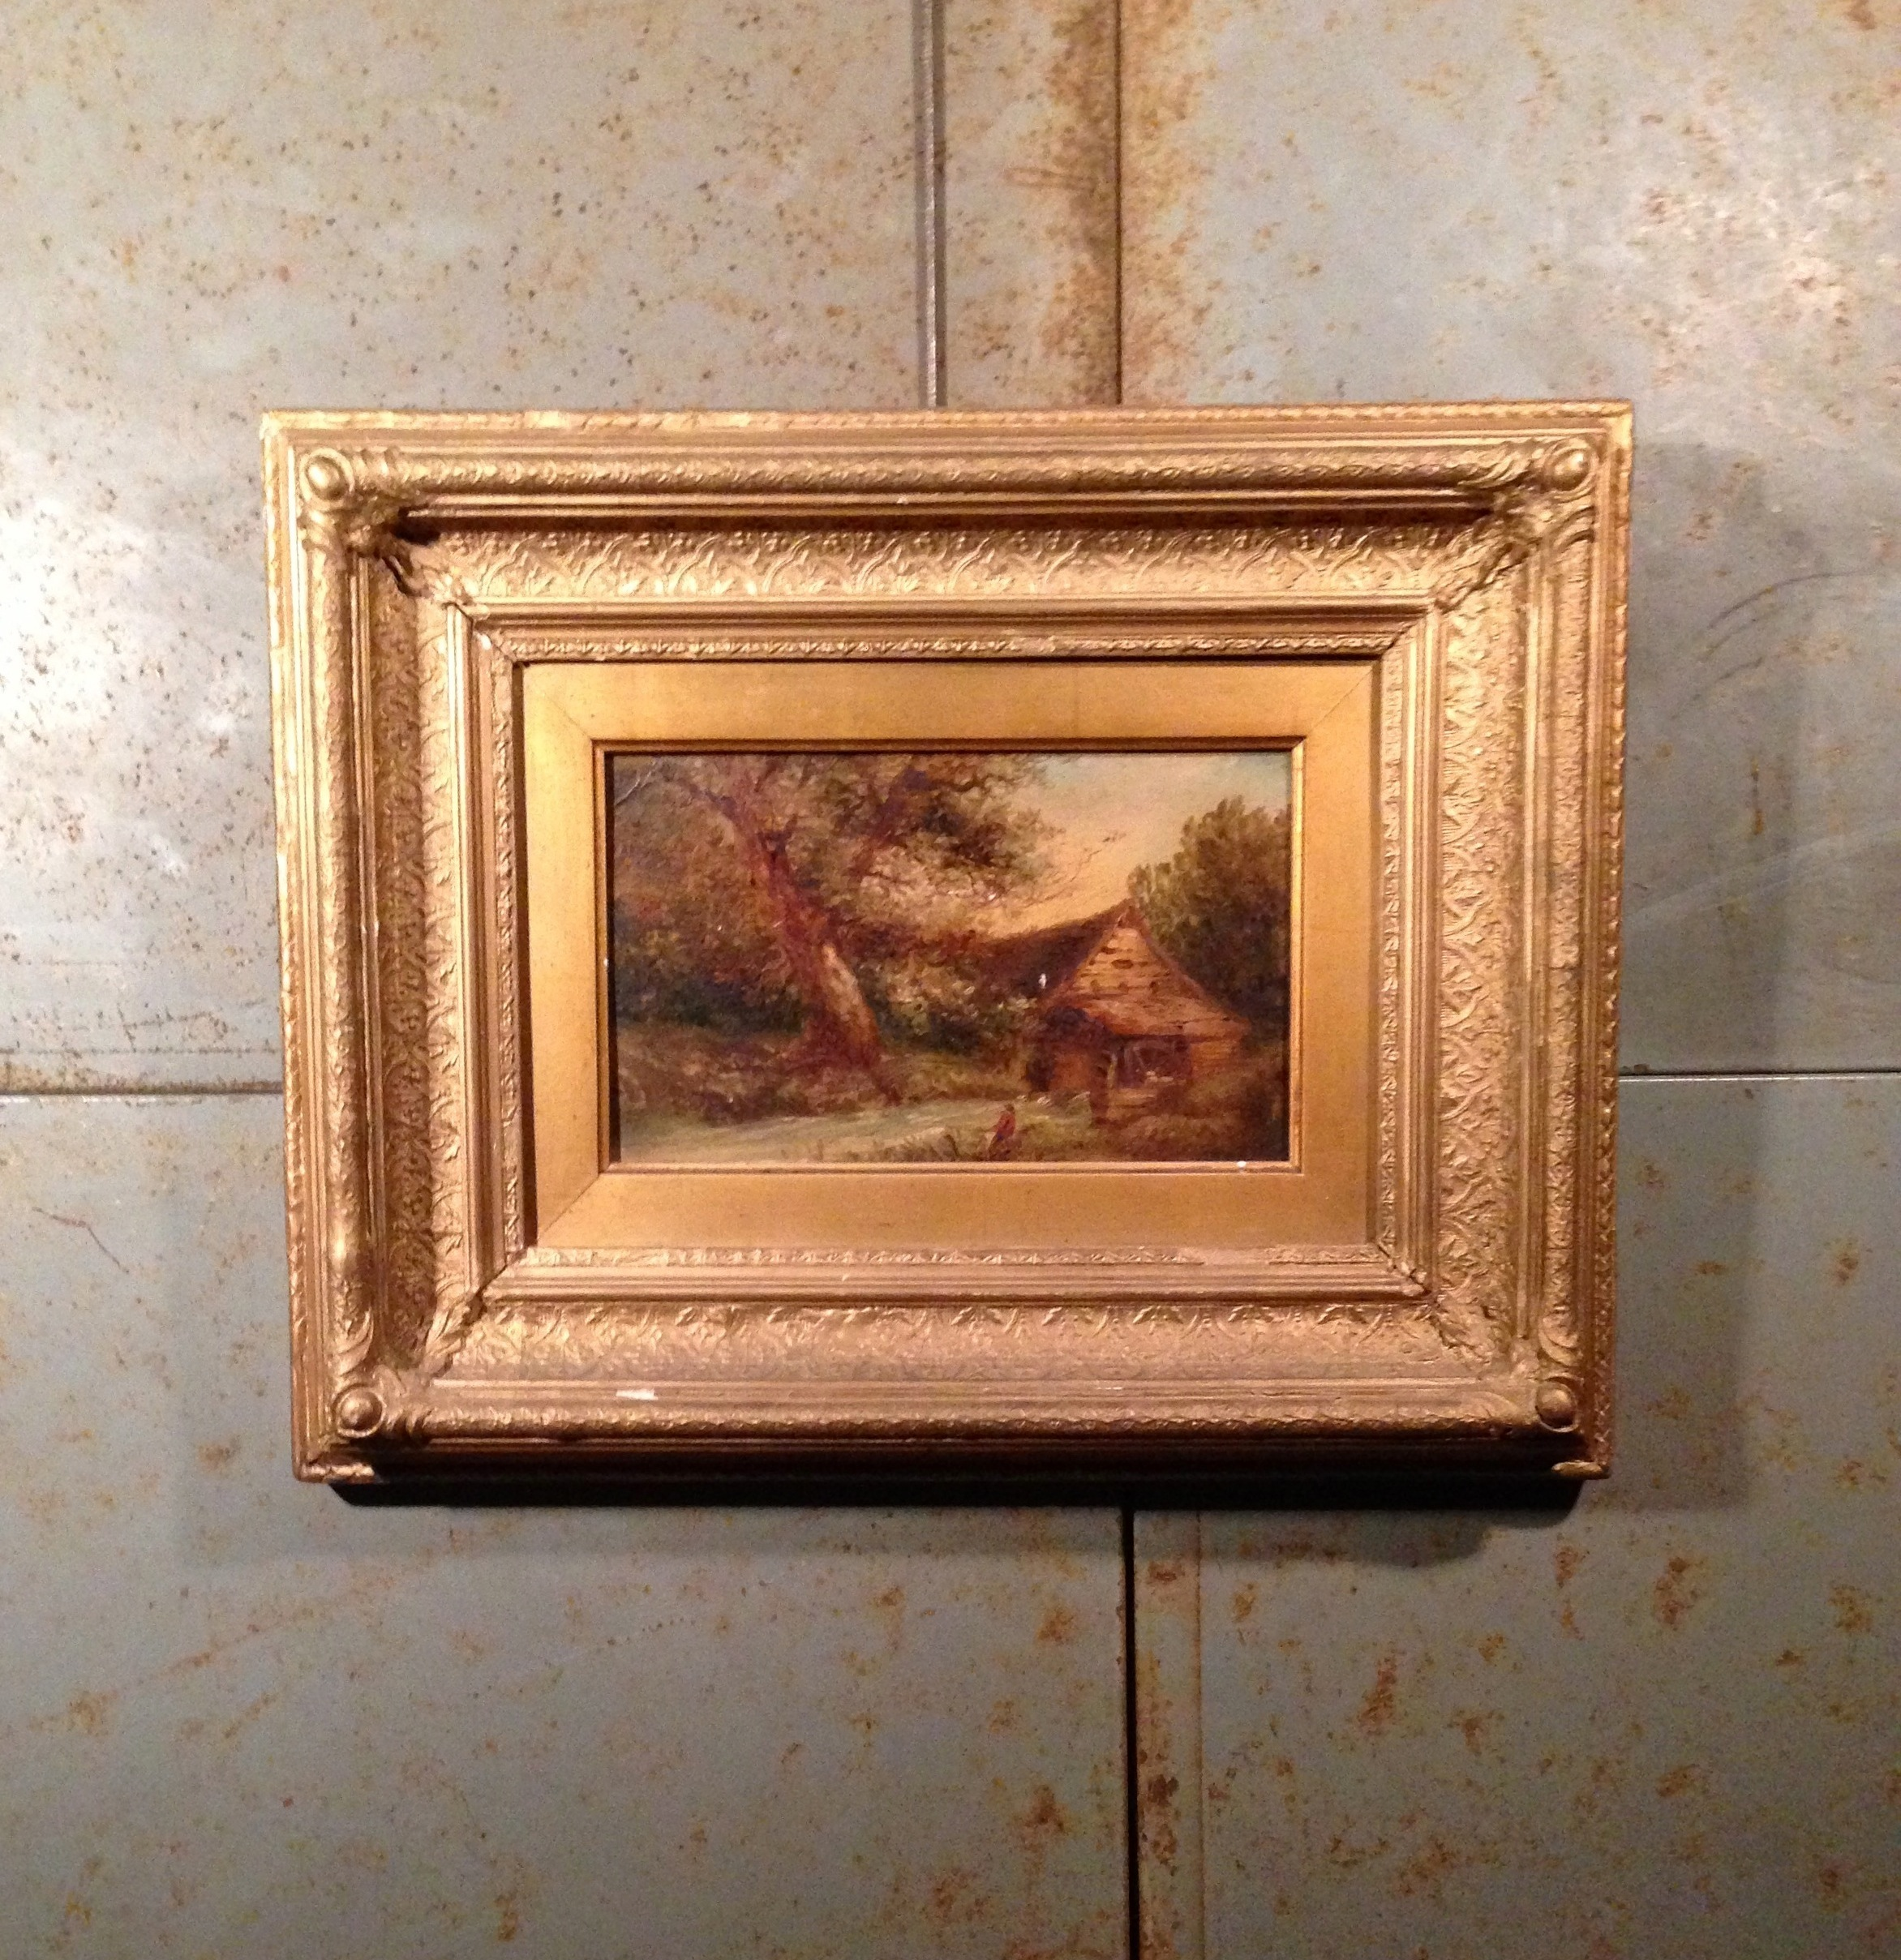 Victorian Gilt Frame Oil Painting | Artistic Industrial - Part 1